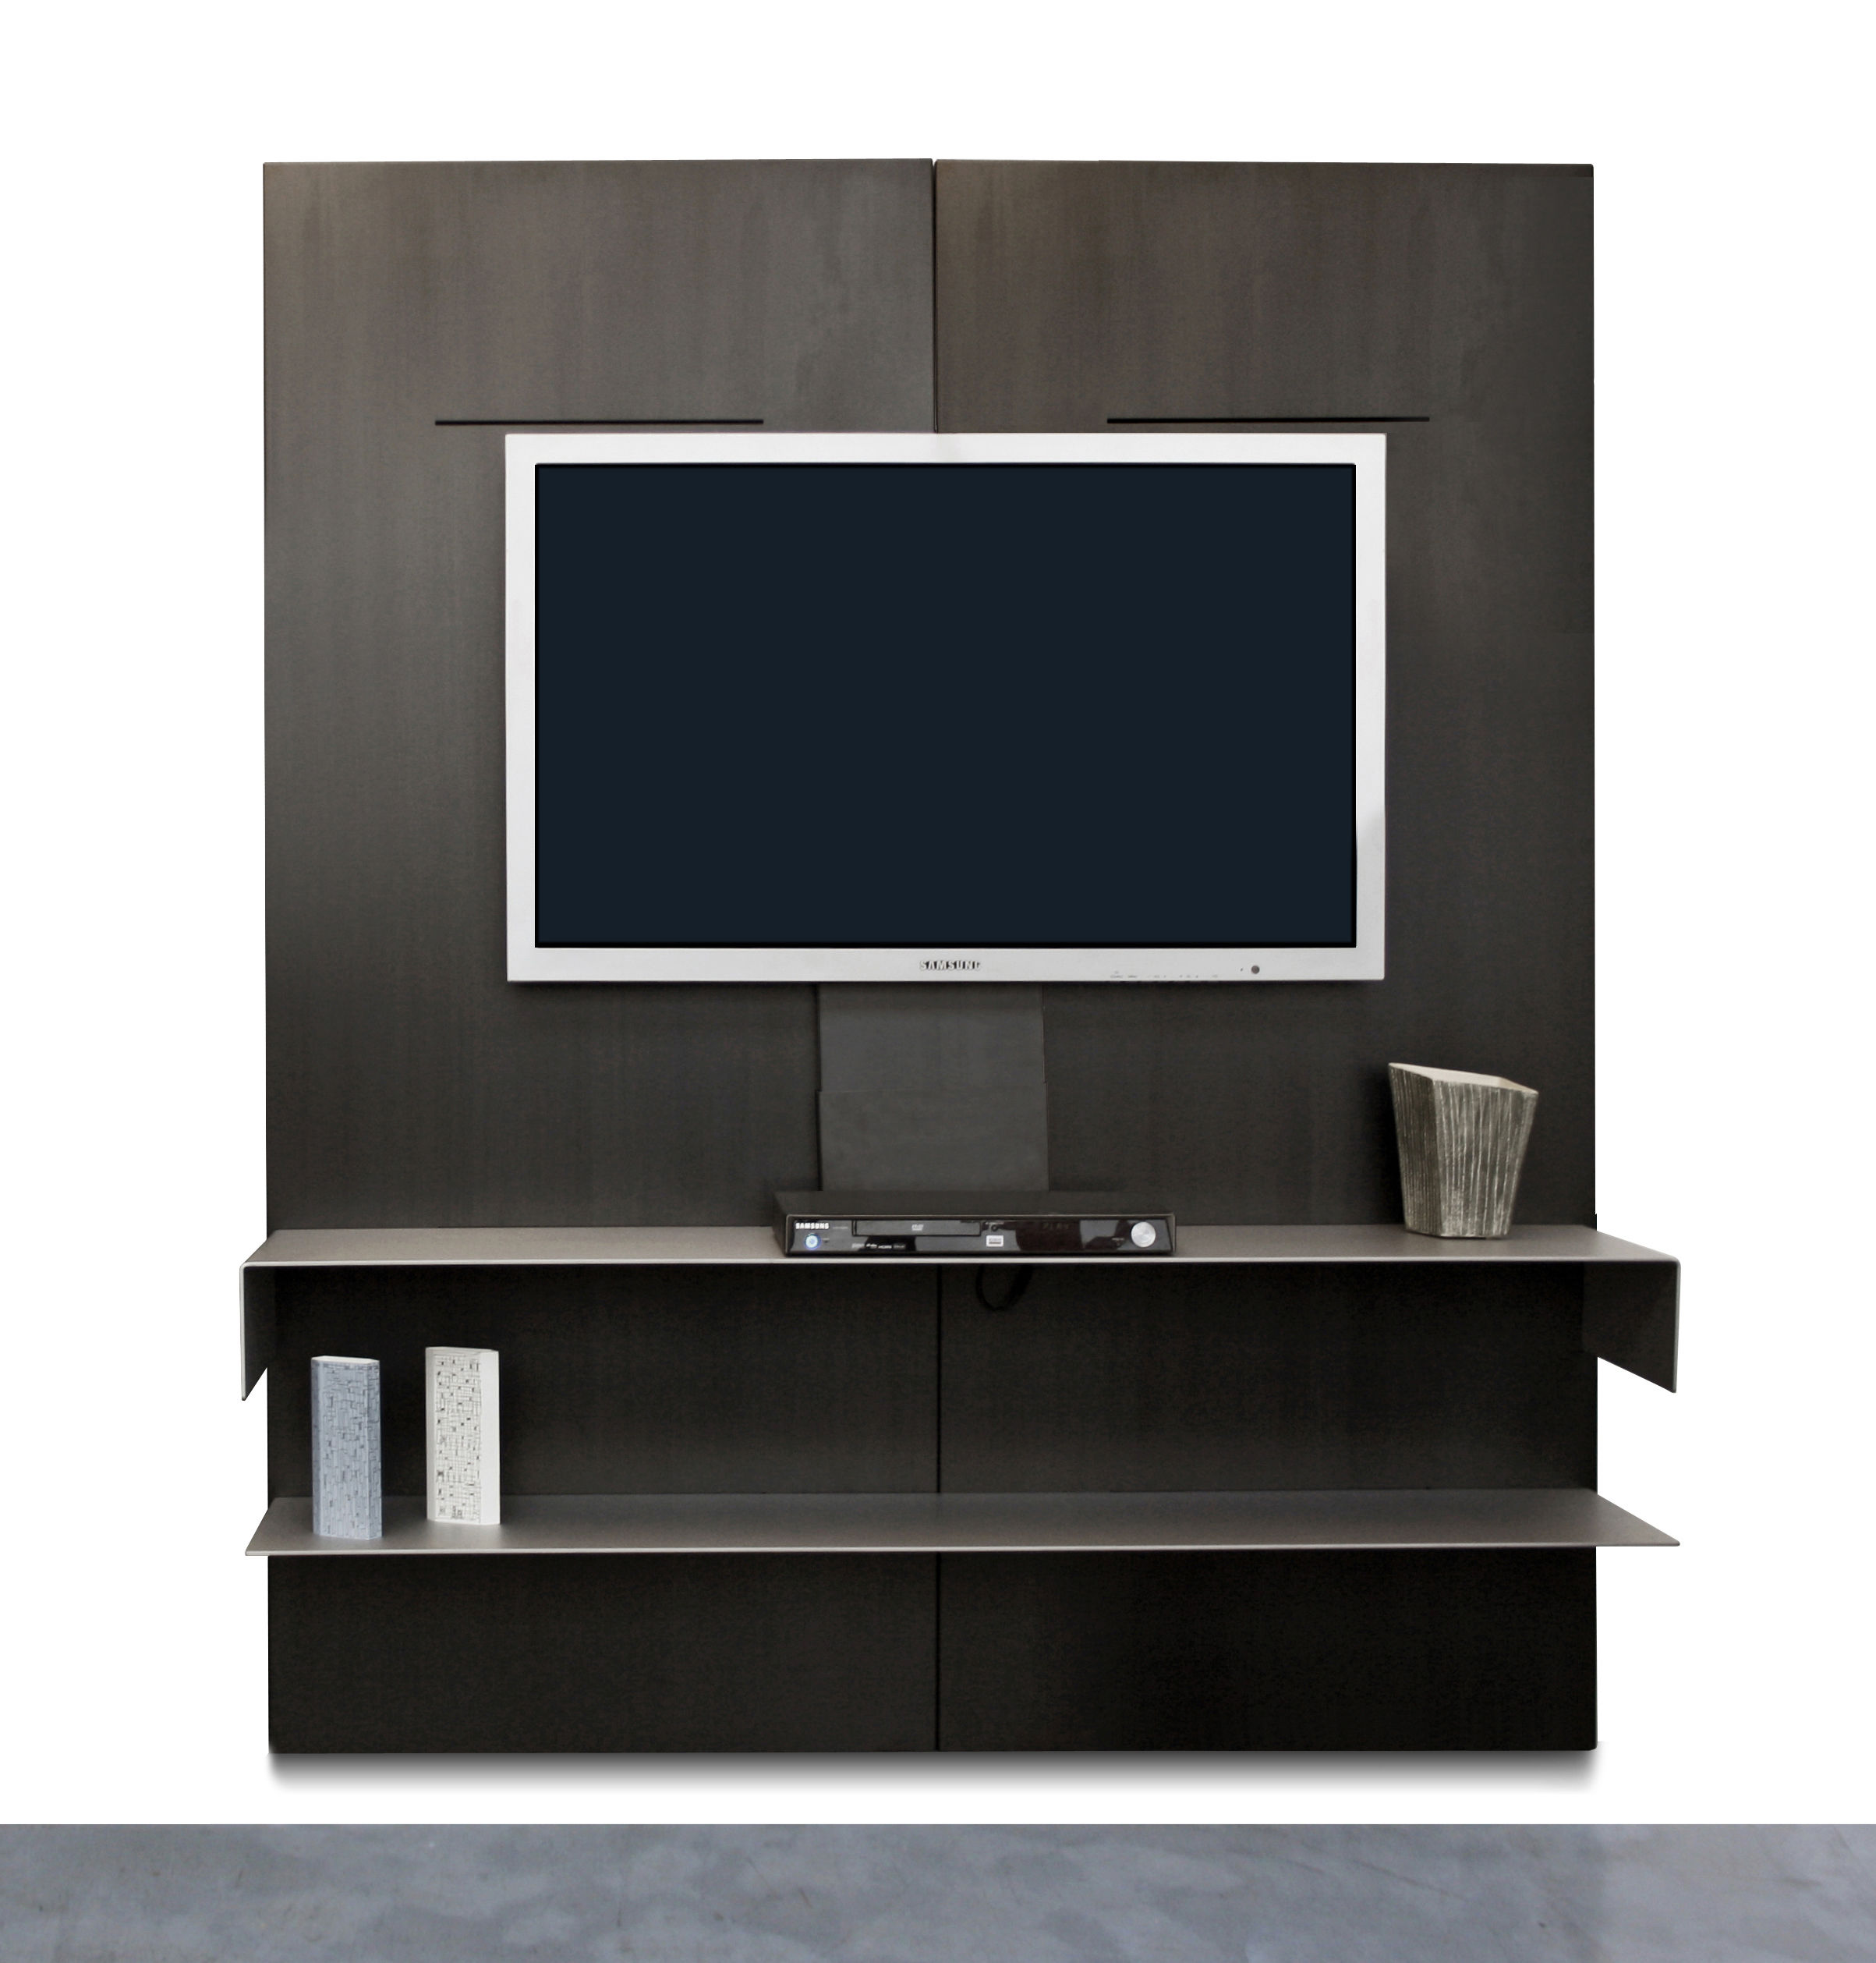 etag re iwall tv modulable acier zeus. Black Bedroom Furniture Sets. Home Design Ideas